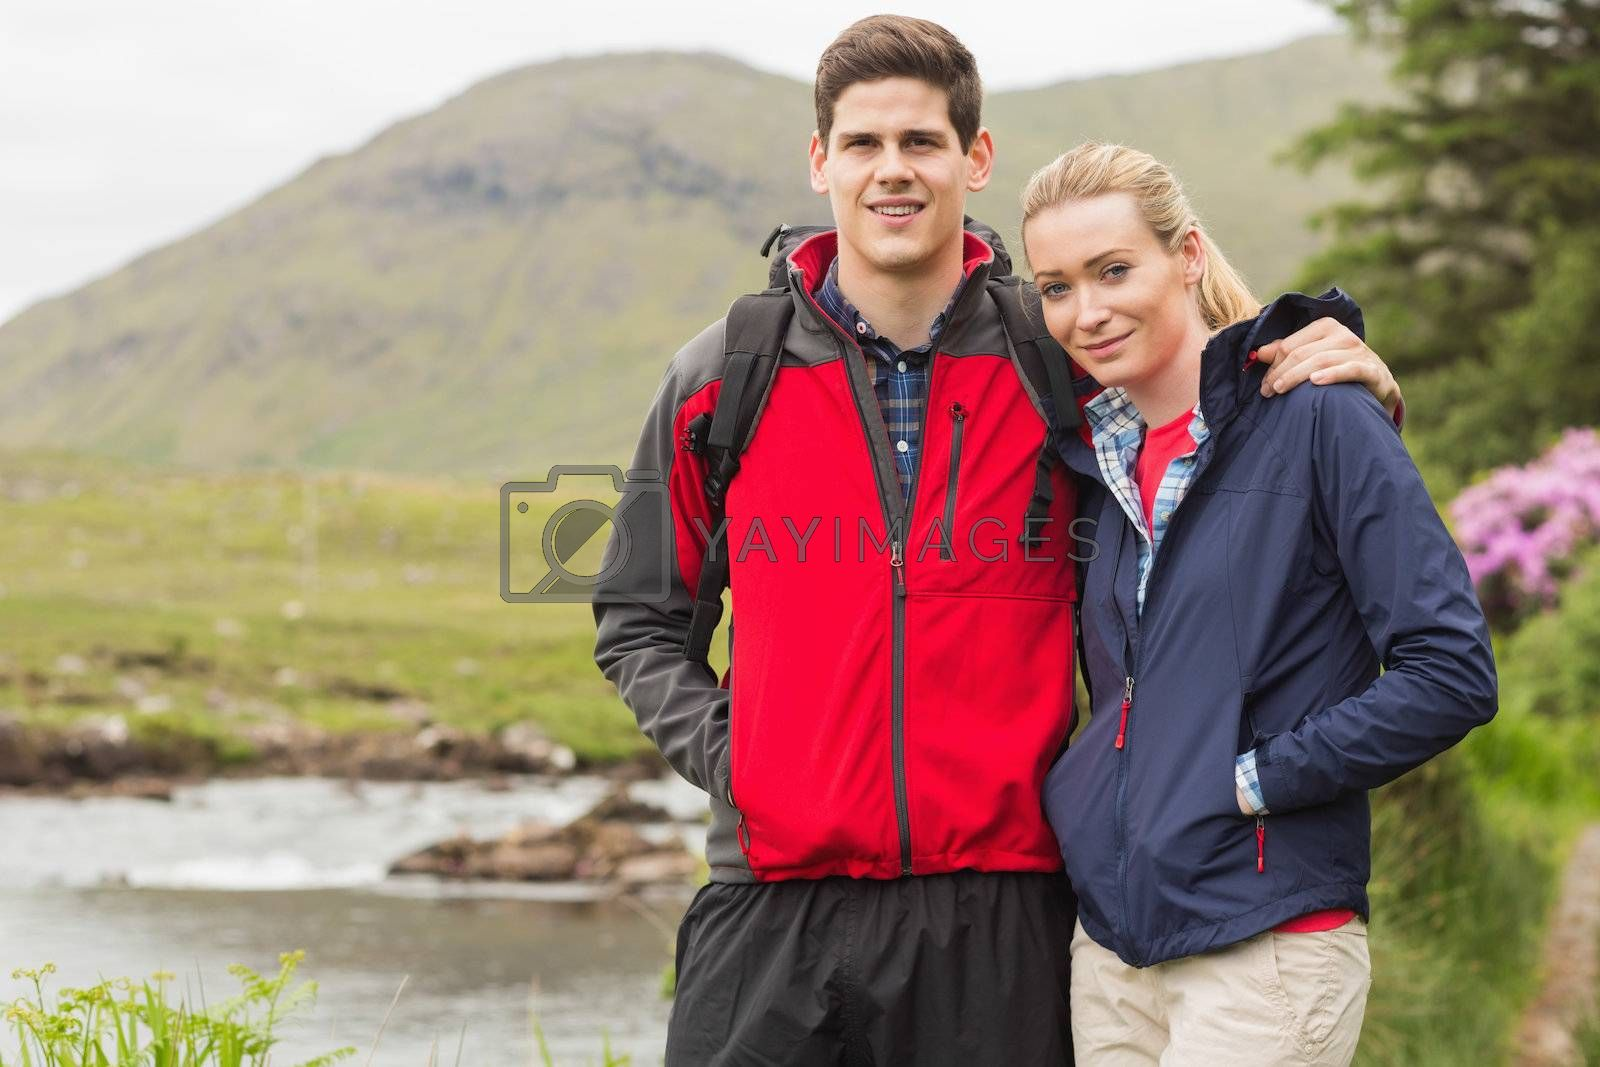 Fit couple on a hike by Wavebreakmedia